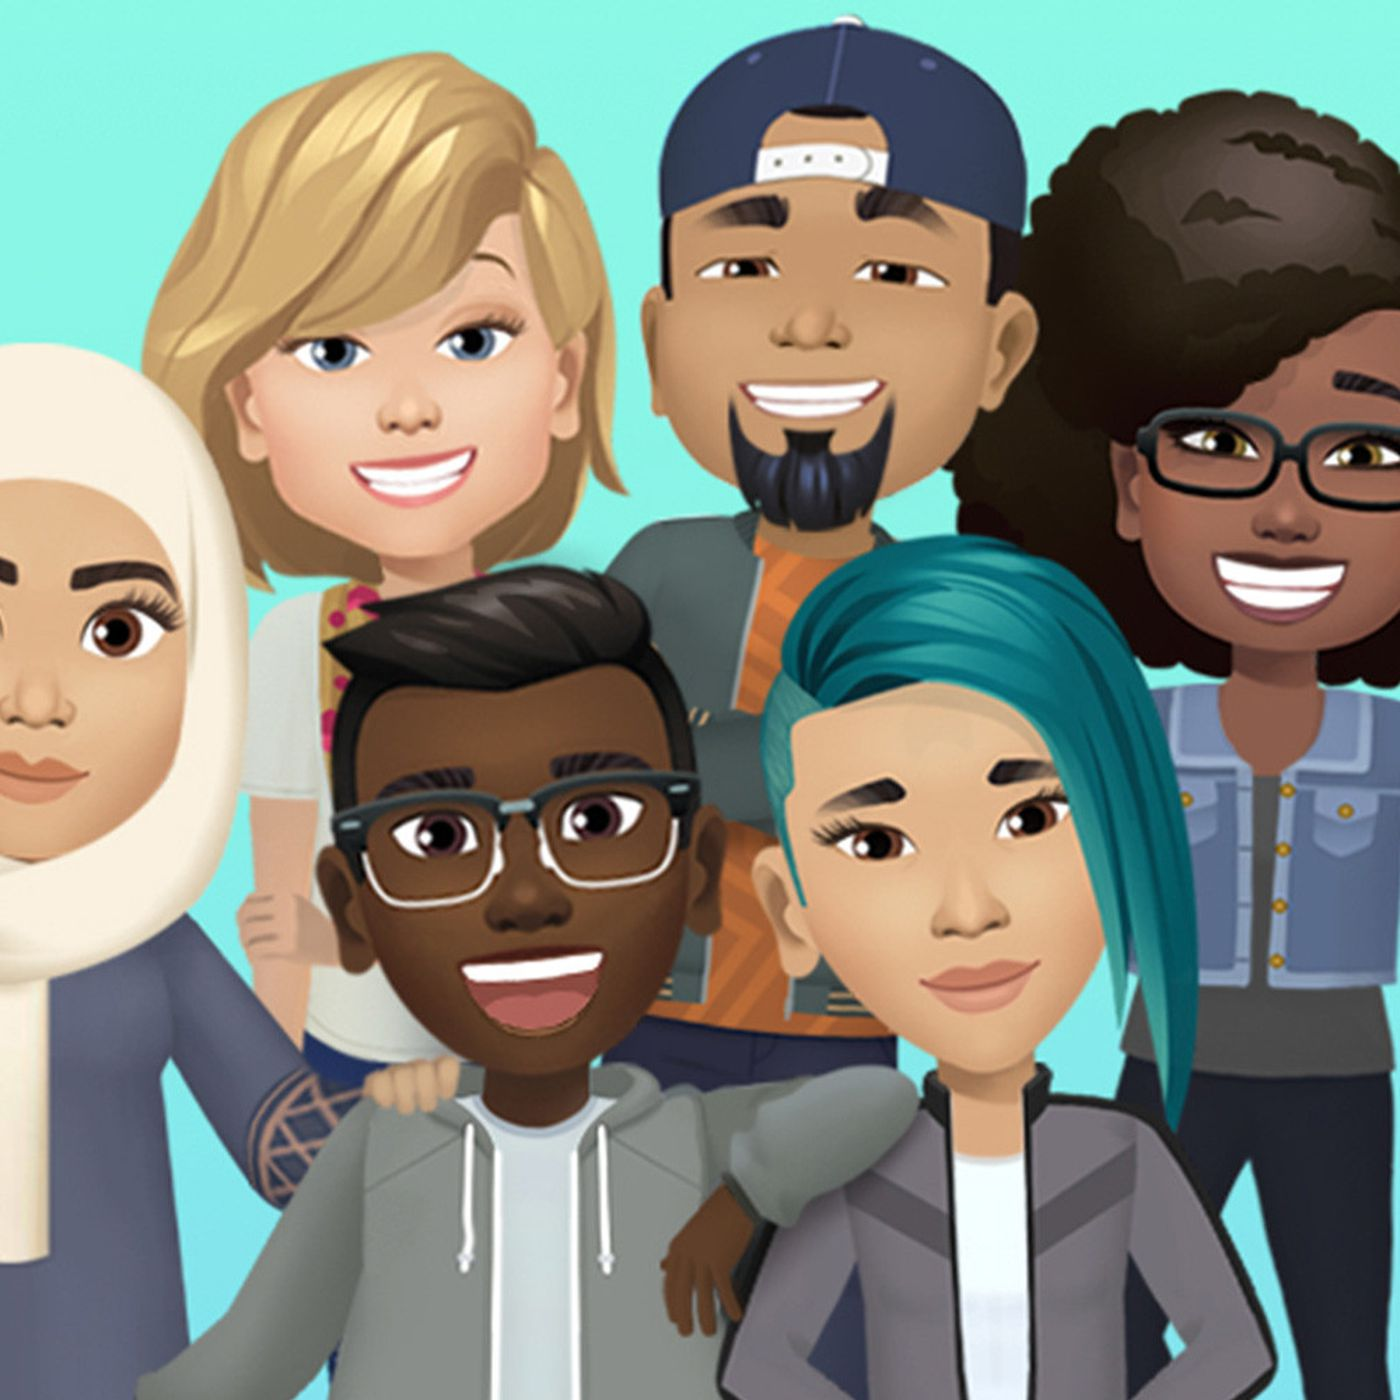 Facebook launches its Bitmoji-like avatars in the US - The Verge